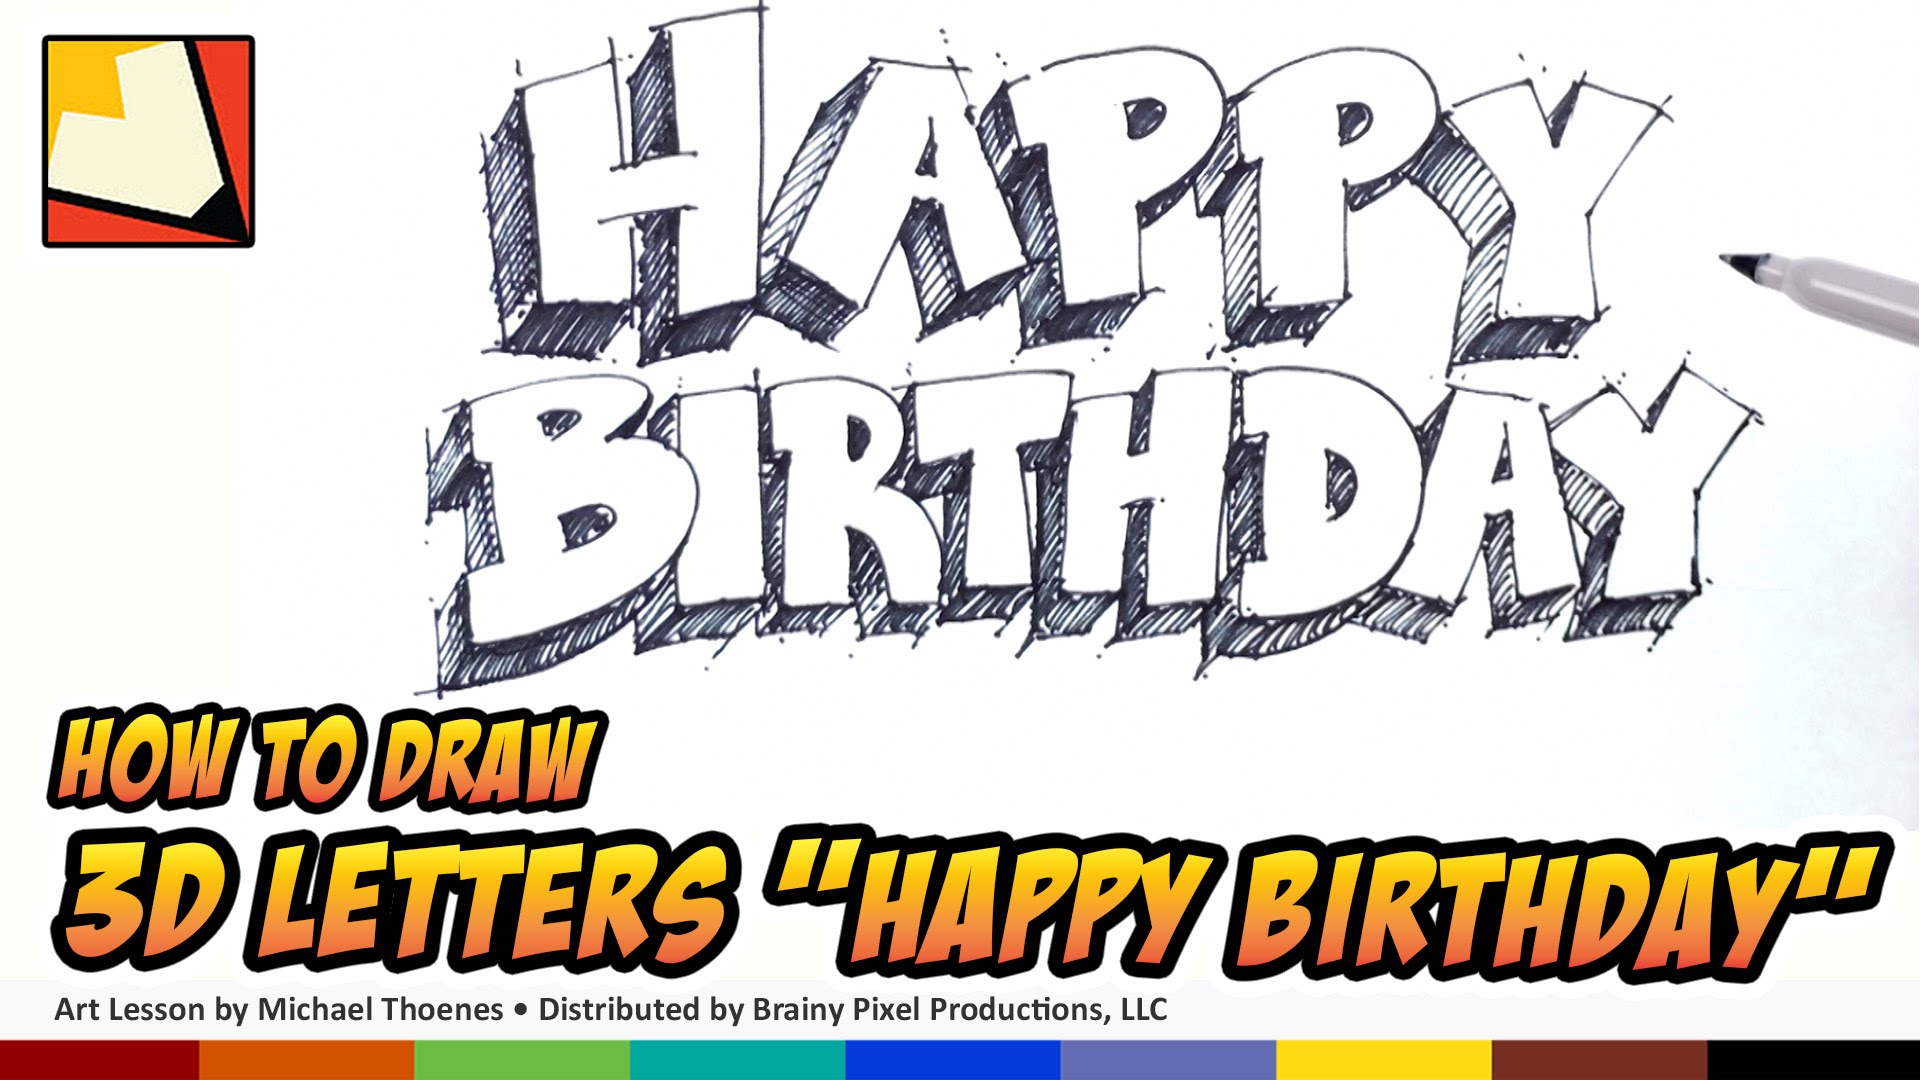 happy birthday graffiti ; happy-birthday-graffiti-letters-how-to-draw-3d-letters-happy-birthday-art-for-kids-birthday